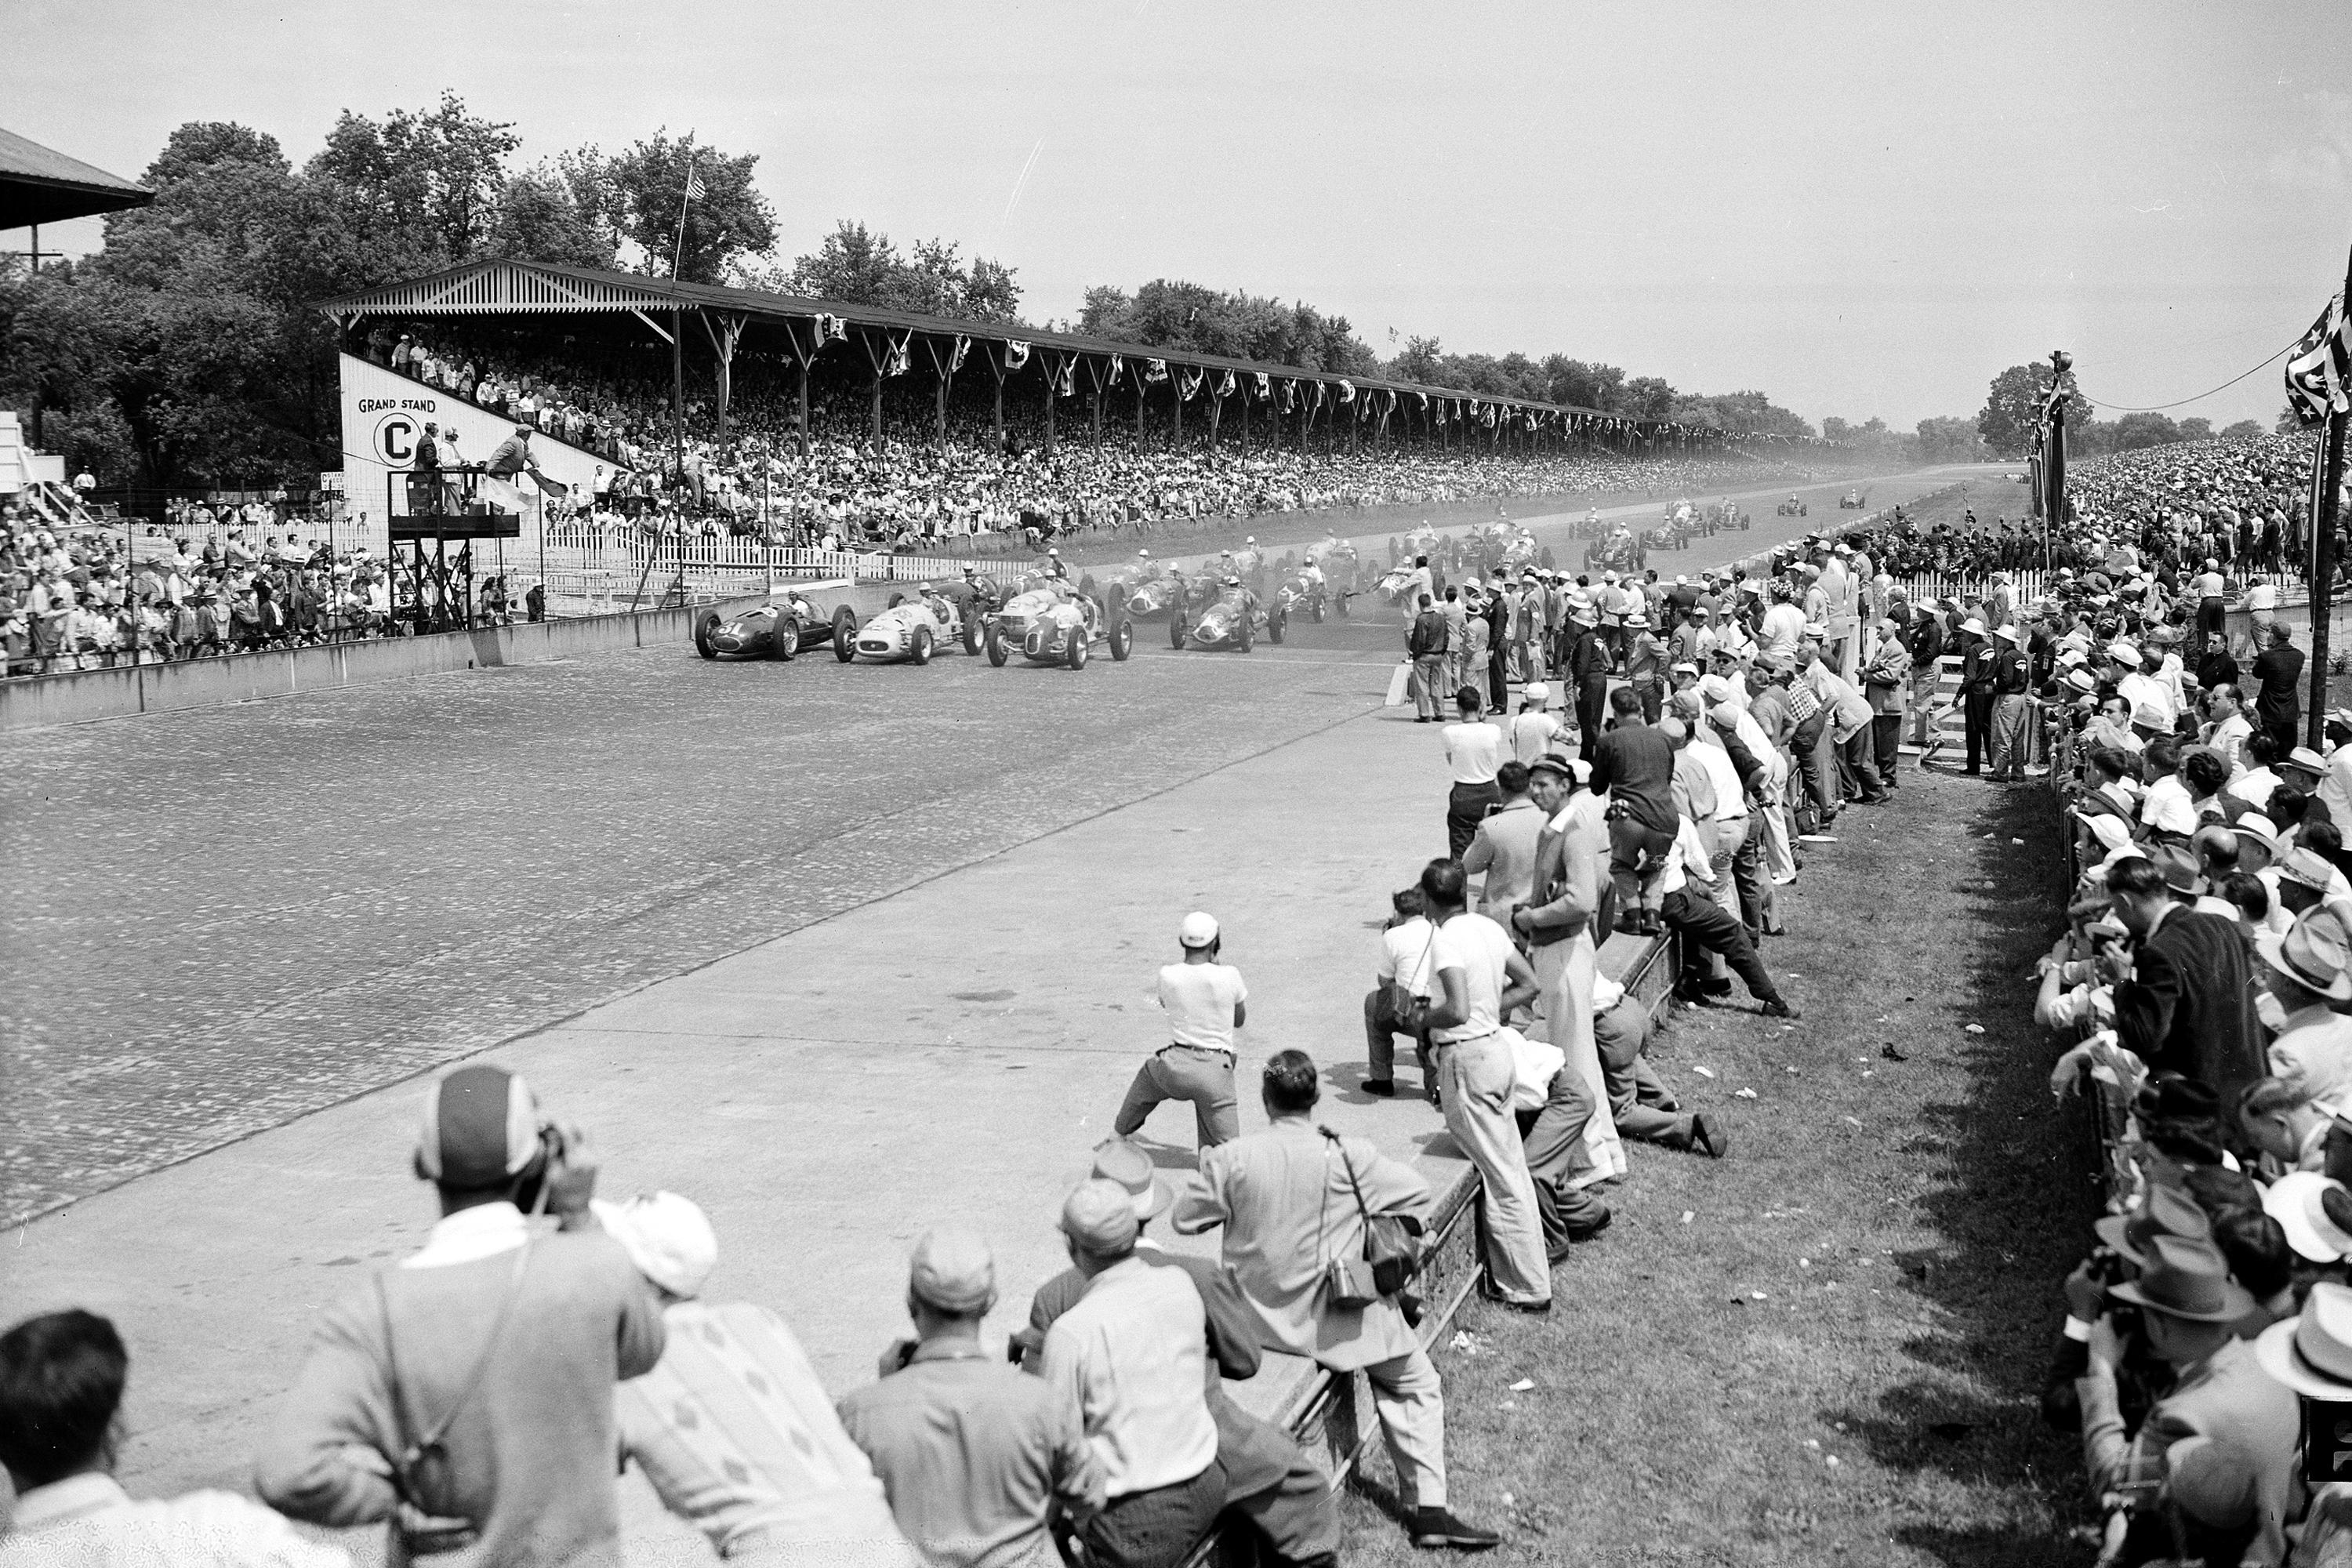 Top moments in the history of Indianapolis Motor Speedway